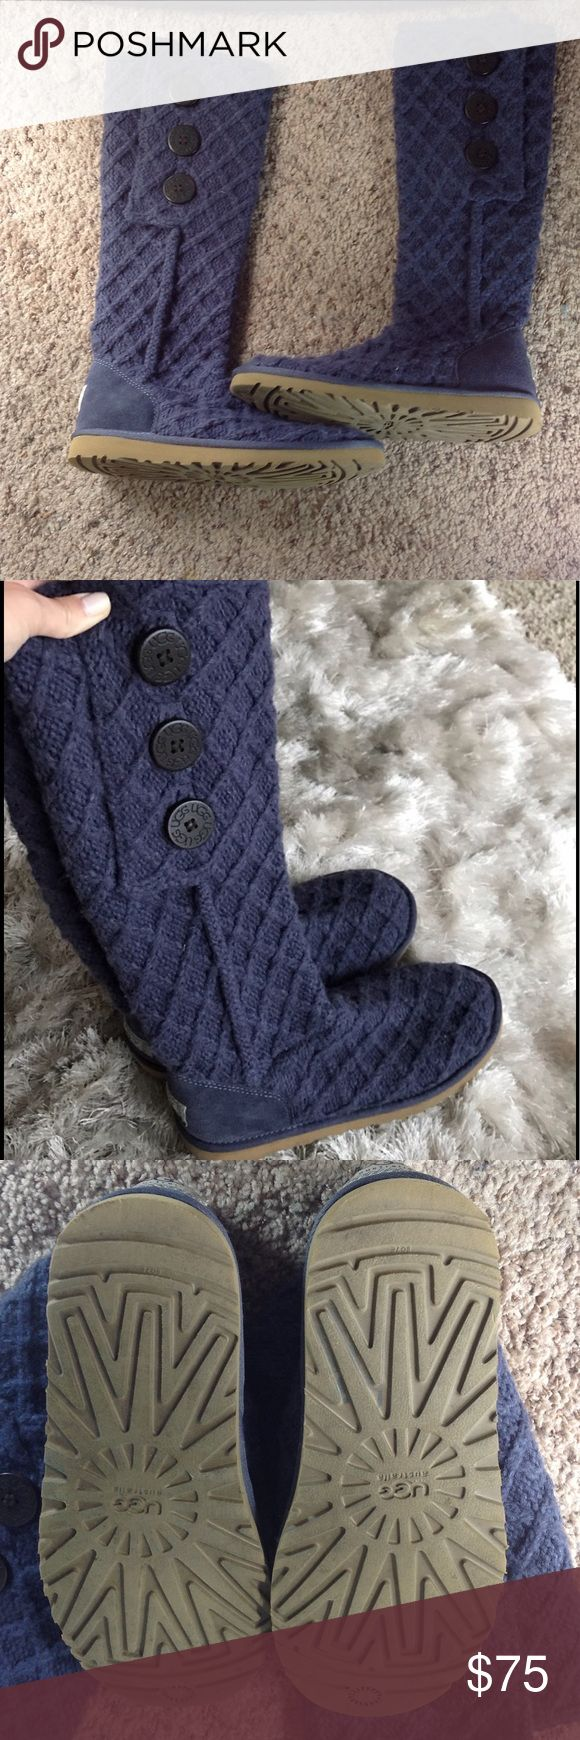 NAVY UGGS HARDLY WORN SO IN EXCELLENT SHAPE NAVY BLUE UGGS NO STAINS ARE TEARS SOLE IS IN EXCELLENT SHAPE TO YOU CAN WEAR THESE HIGH LIKE BOOTS ARE FOLD TO HAVE LITTLE BOOTIES SZ 8 UGGS Shoes